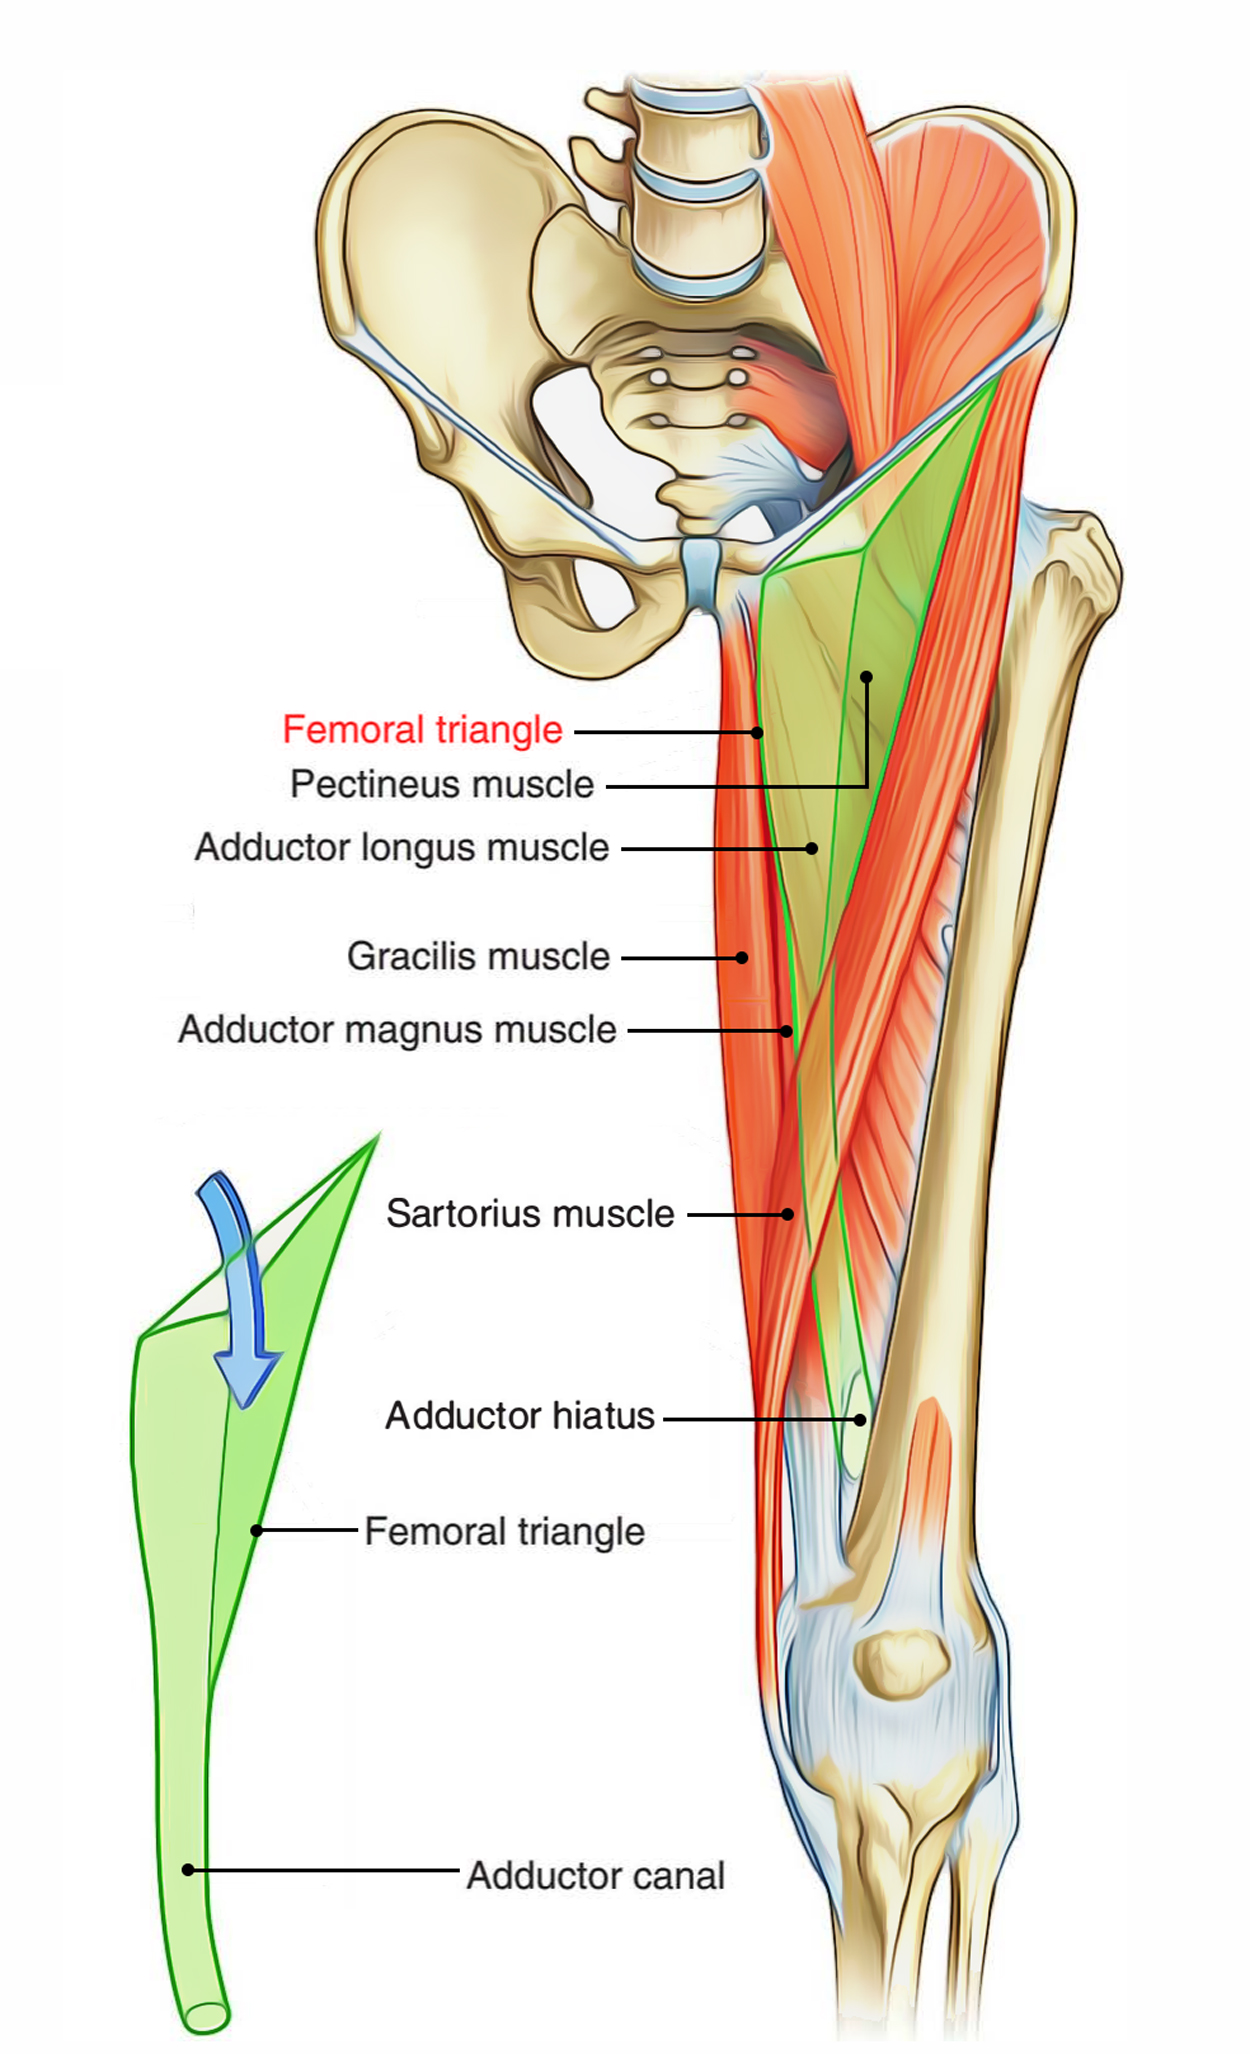 hight resolution of boundaries of the femoral triangle